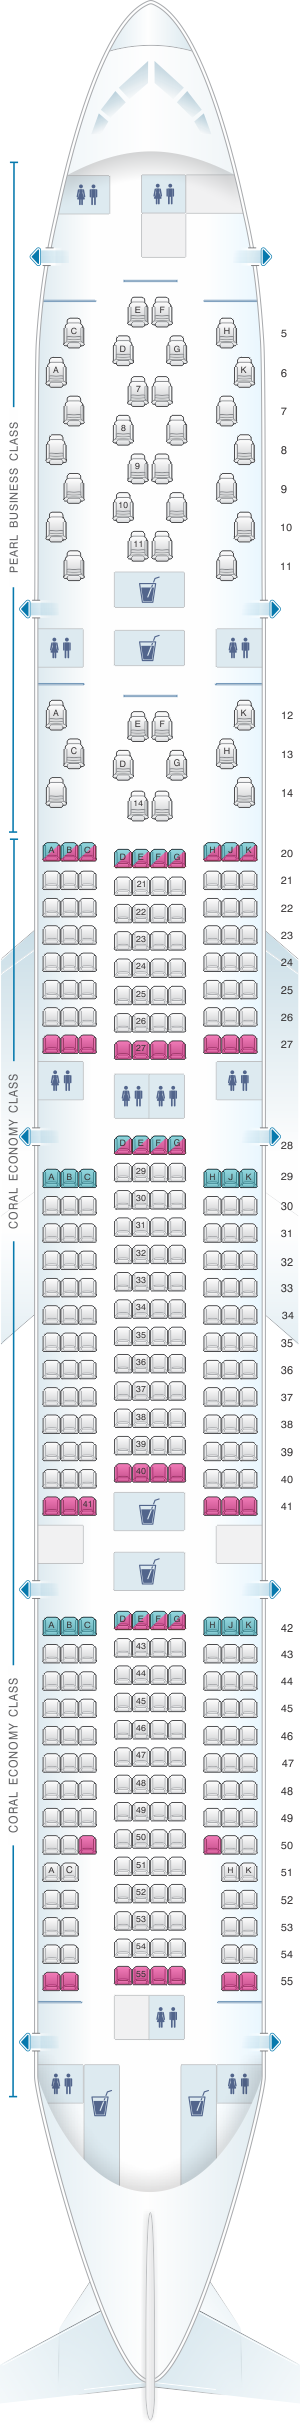 Seat map for Etihad Airways Boeing B777 300ER 2 class V2